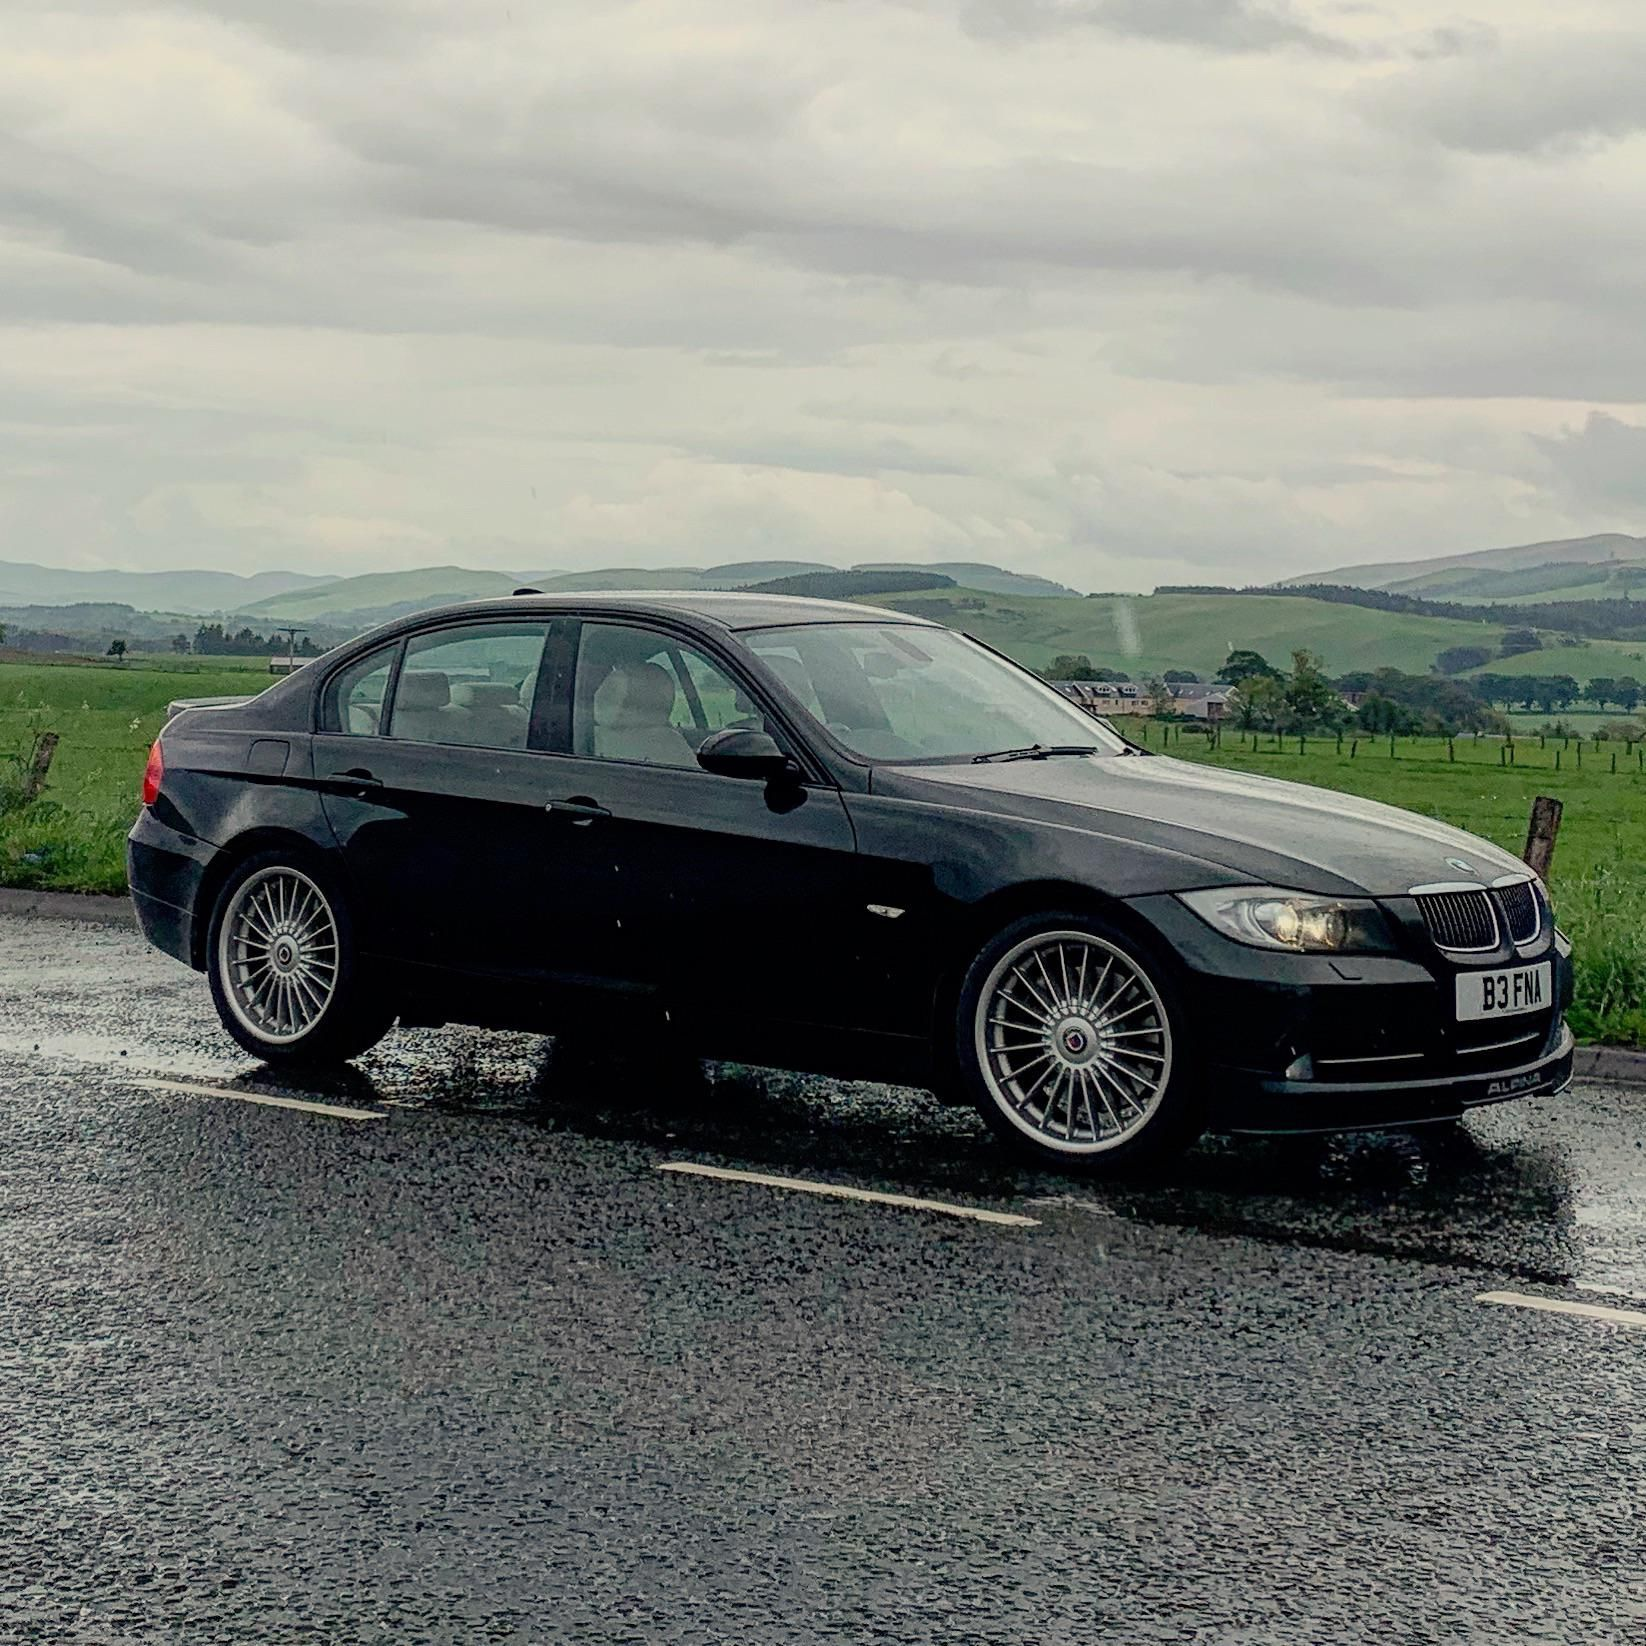 My Alpina B3 Bi Turbo E90 Thought I D Share Yet Another Picture